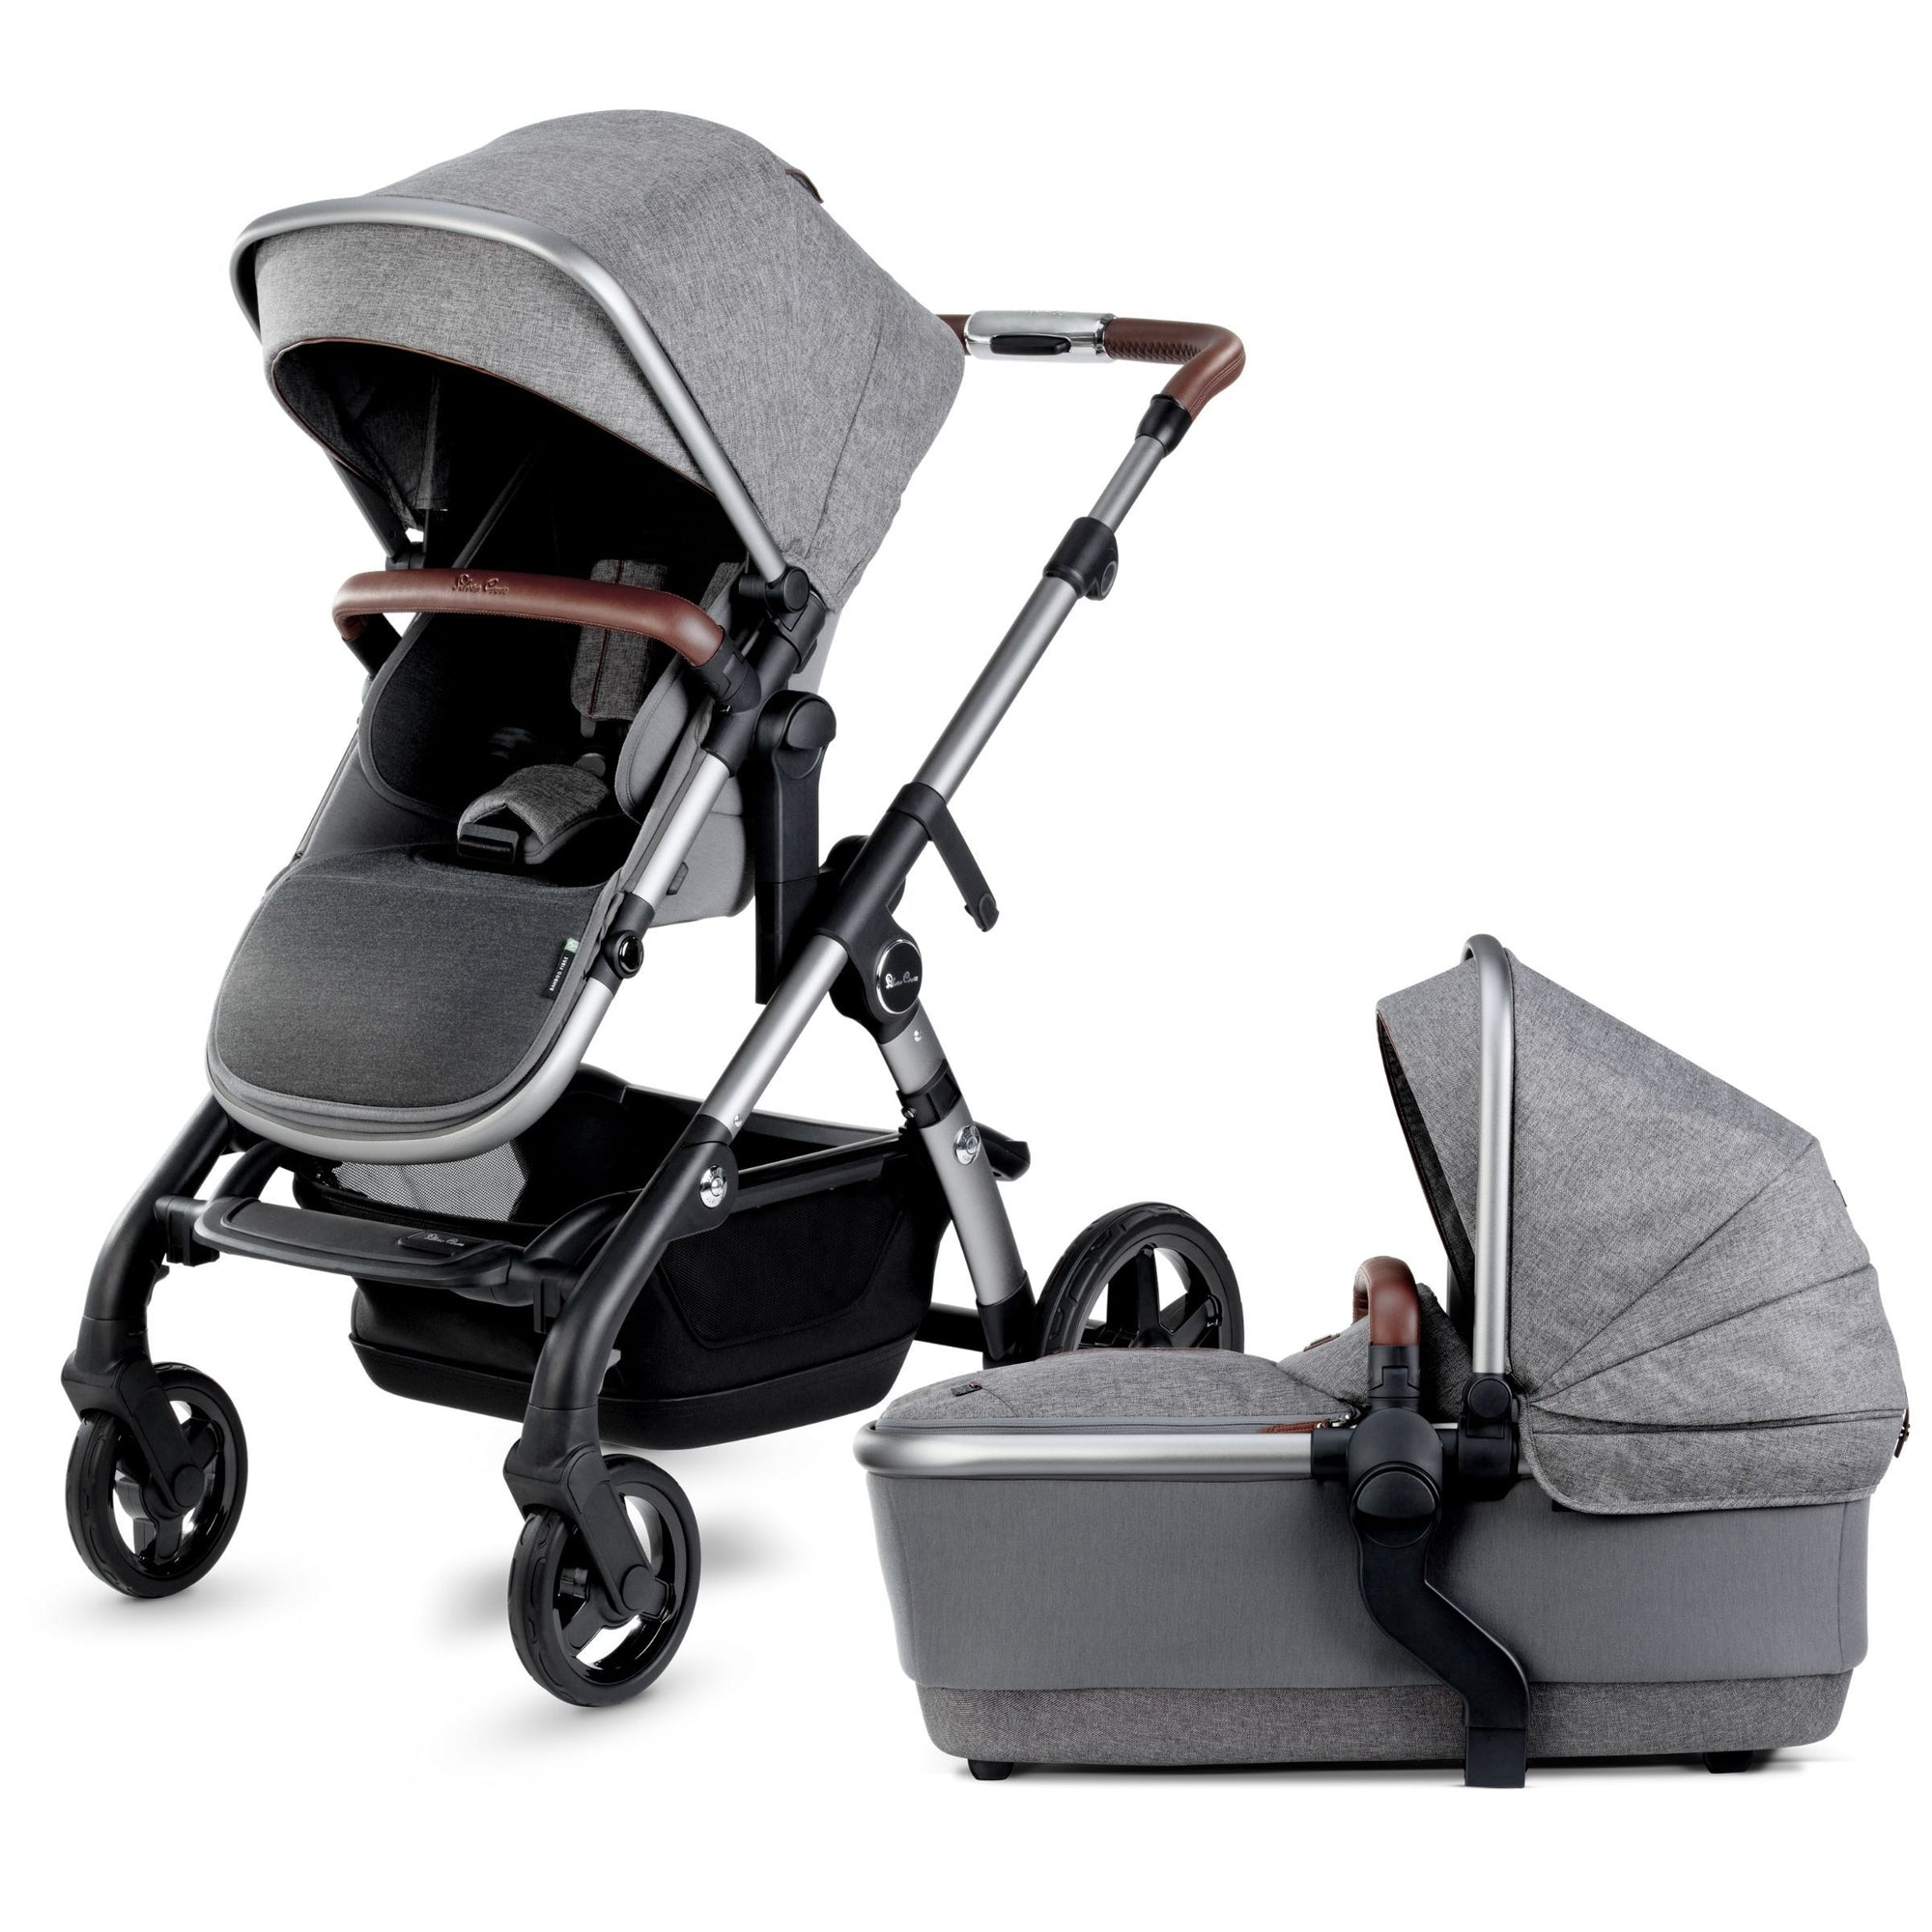 Footmuff To Fit Silver Cross Range Pushchair Buggy Silvercross New